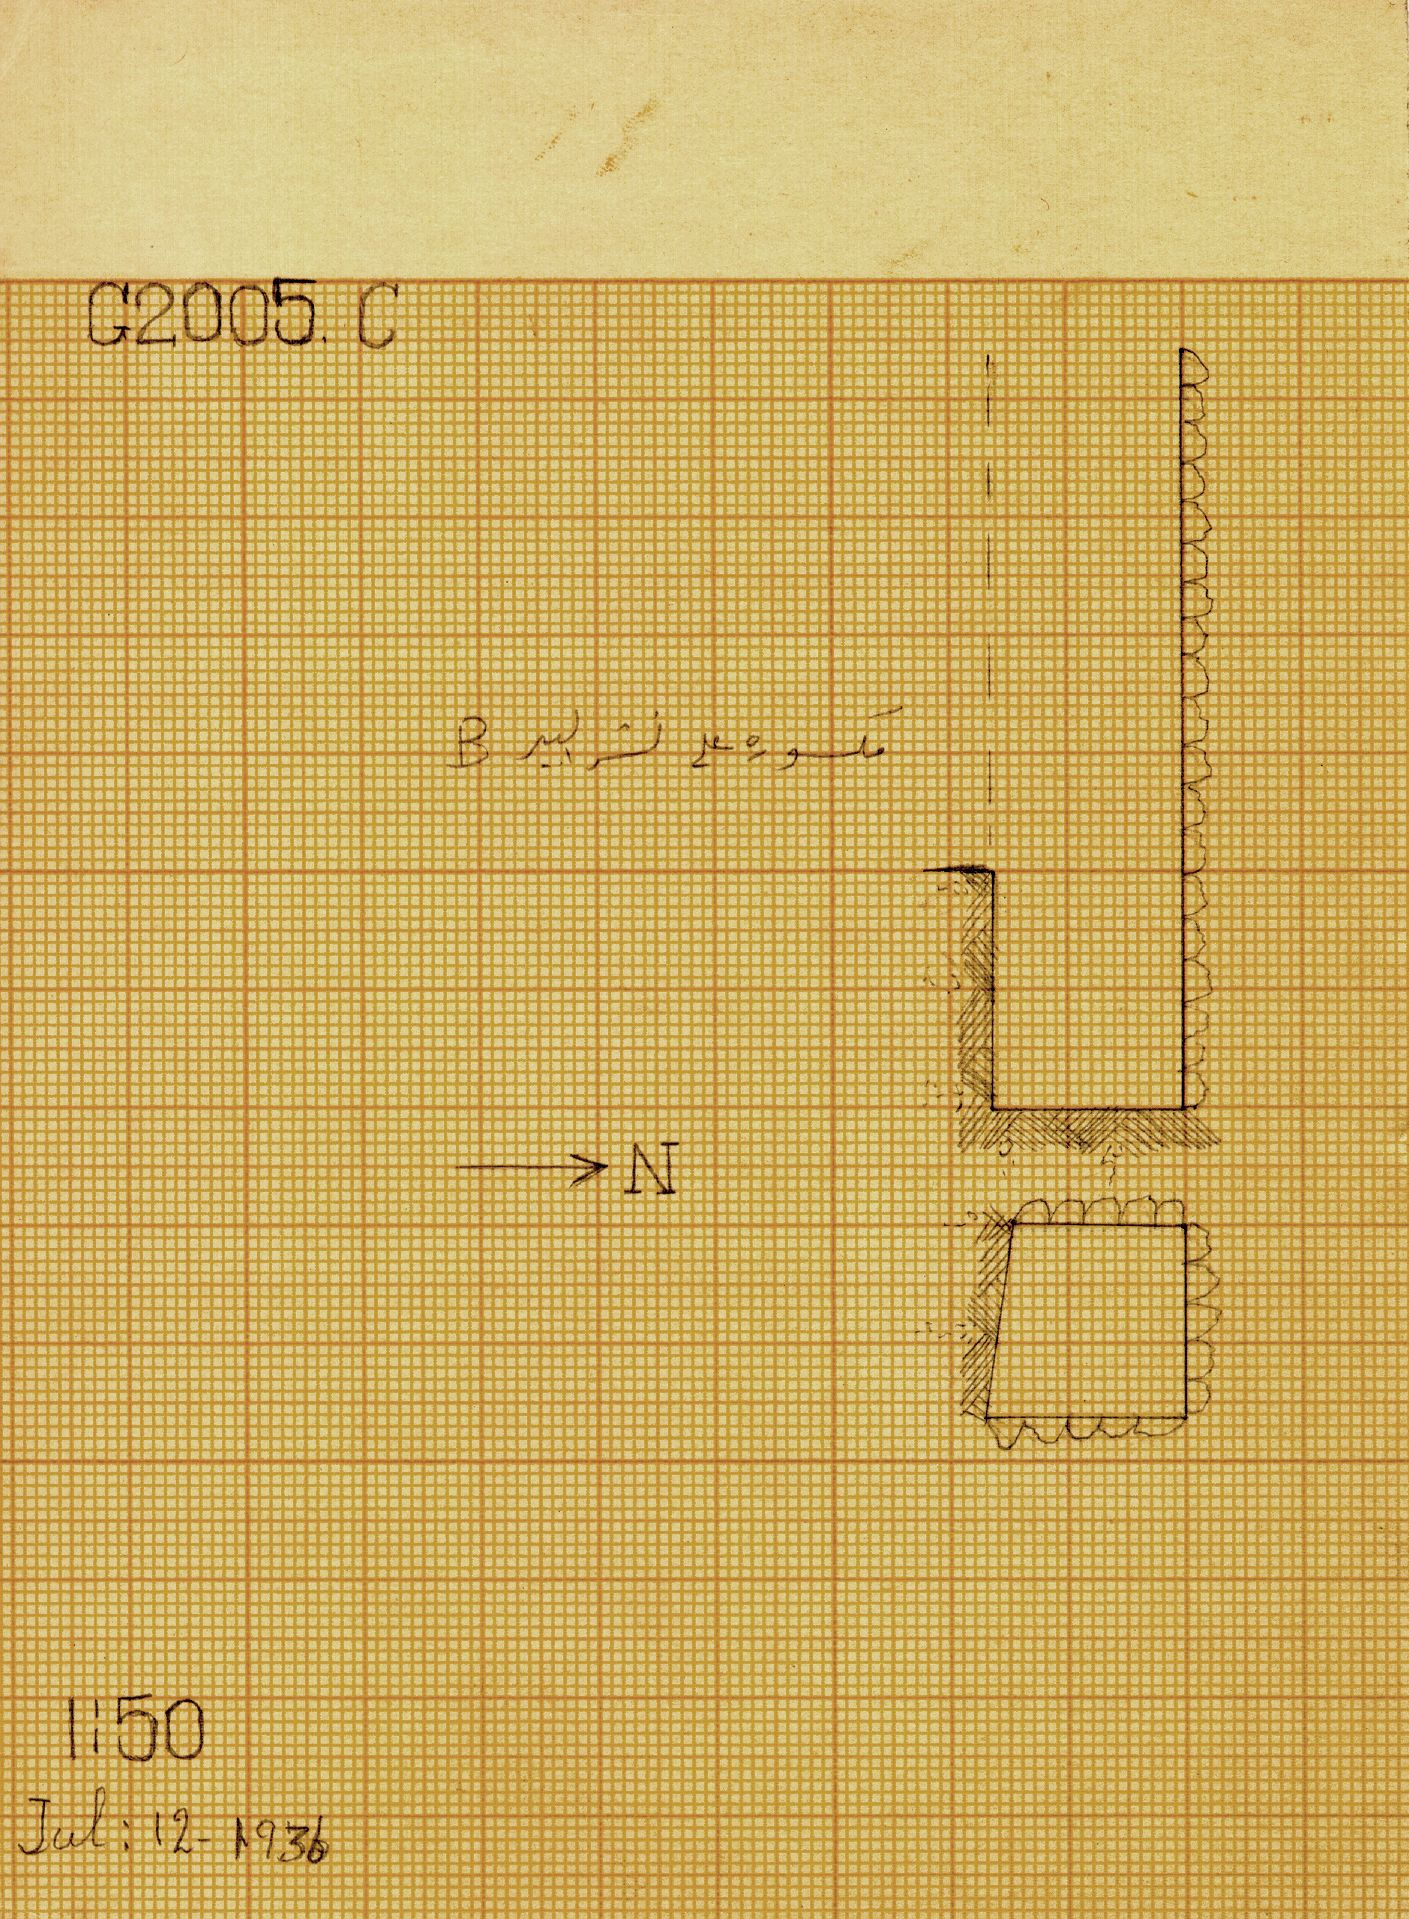 Maps and plans: G 2005, Shaft C